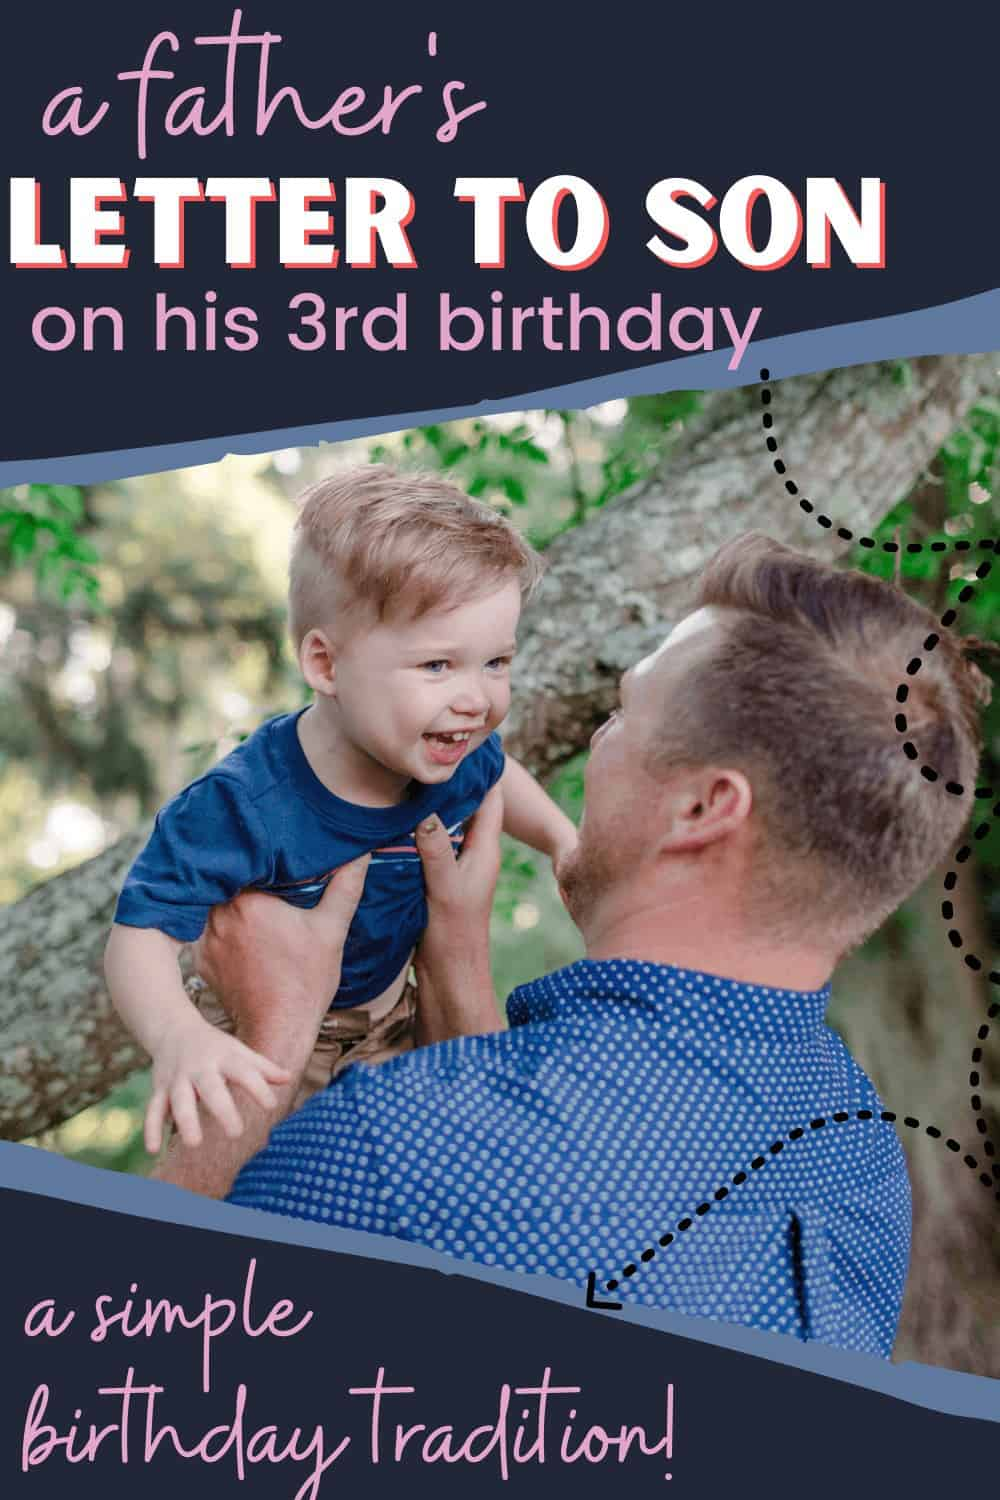 son's 3rd birthday letter from dad